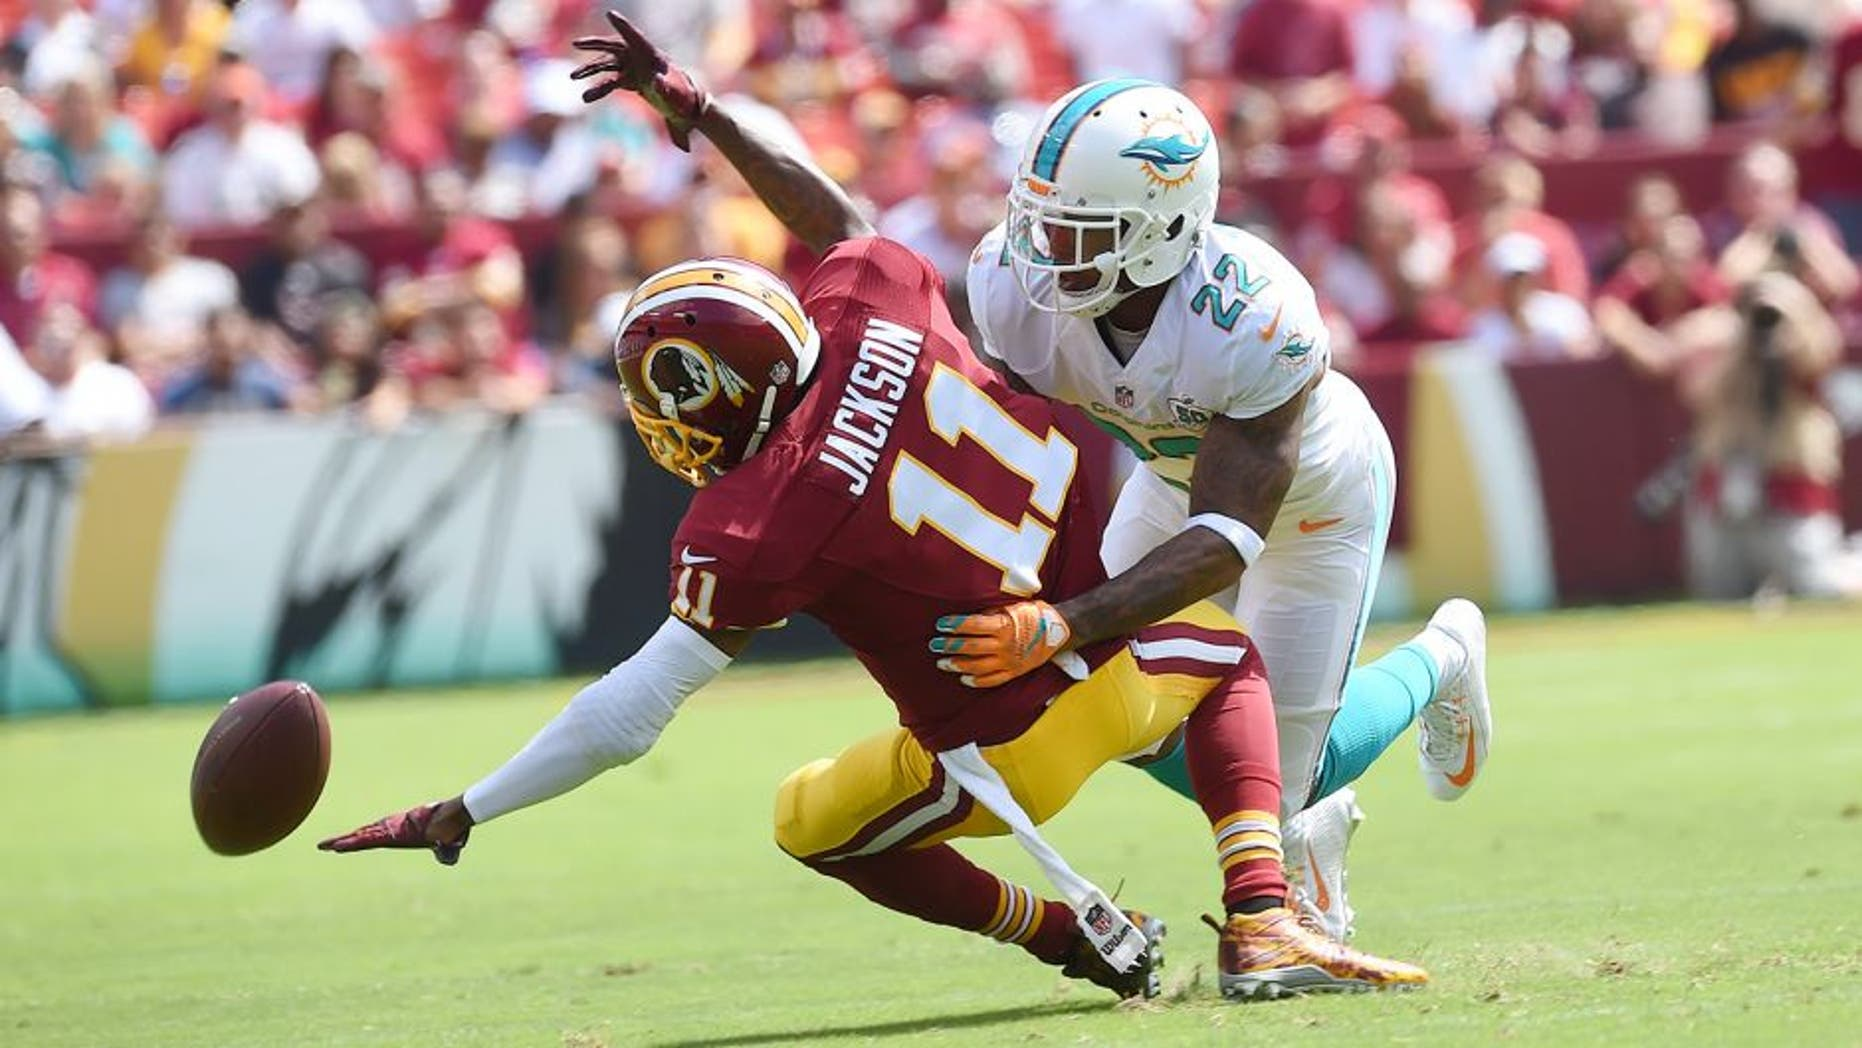 LANDOVER, MD - SEPTEMBER 13: Miami Dolphins cornerback Jamar Taylor (22) is called for pass interference as he defends Washington Redskins wide receiver DeSean Jackson (11) in the first quarter during the game between the Washington Redskins and the Miami Dolphins at FedEx Field on Sunday, September 13, 2015. (Photo by Toni L. Sandys/ The Washington Post via Getty Images)